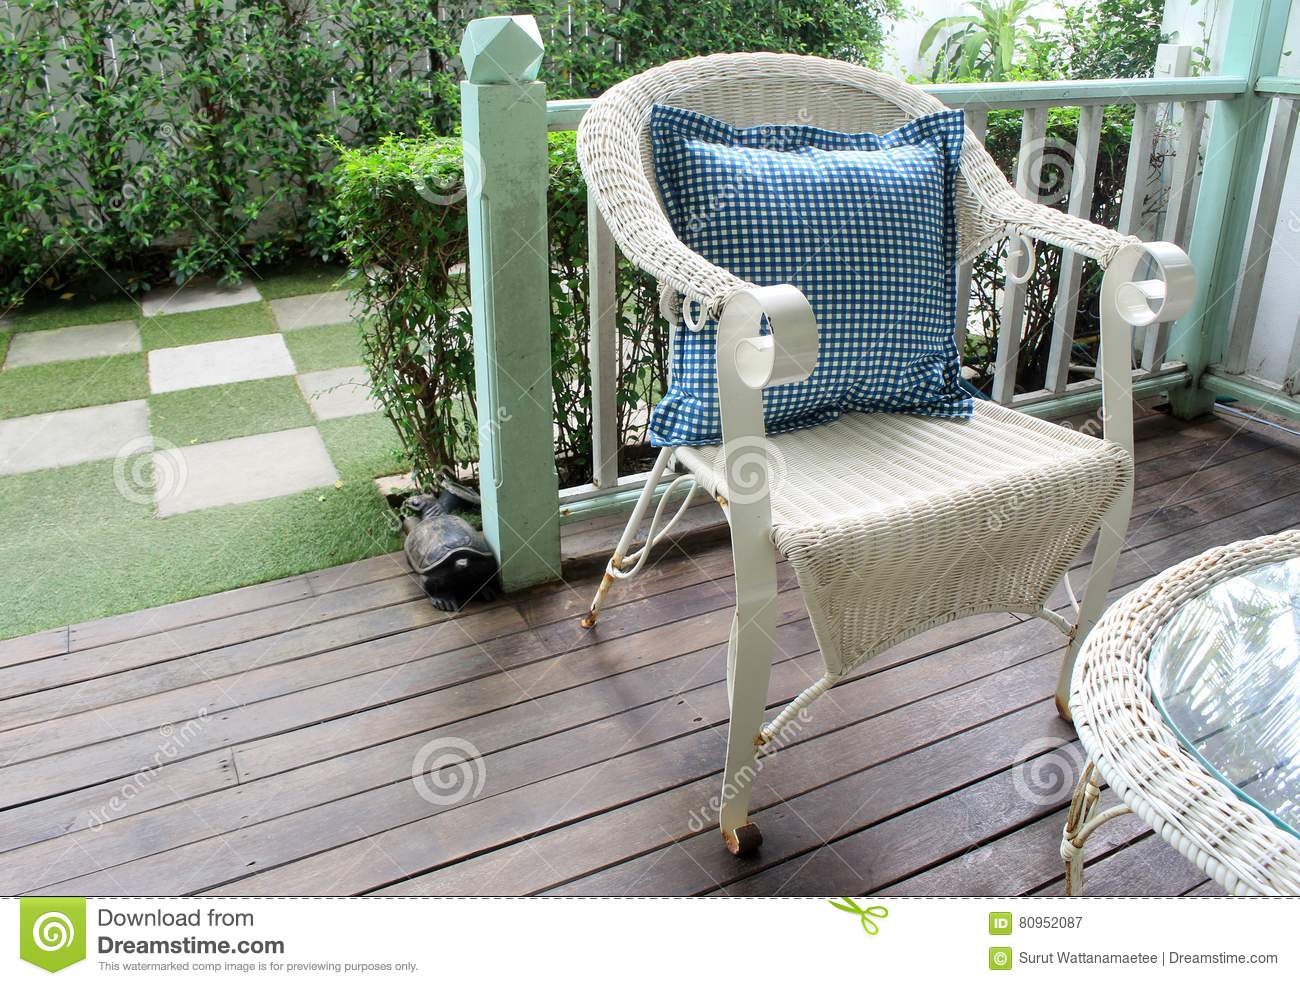 648 Cane Chairs Photos Free Royalty Free Stock Photos From Dreamstime